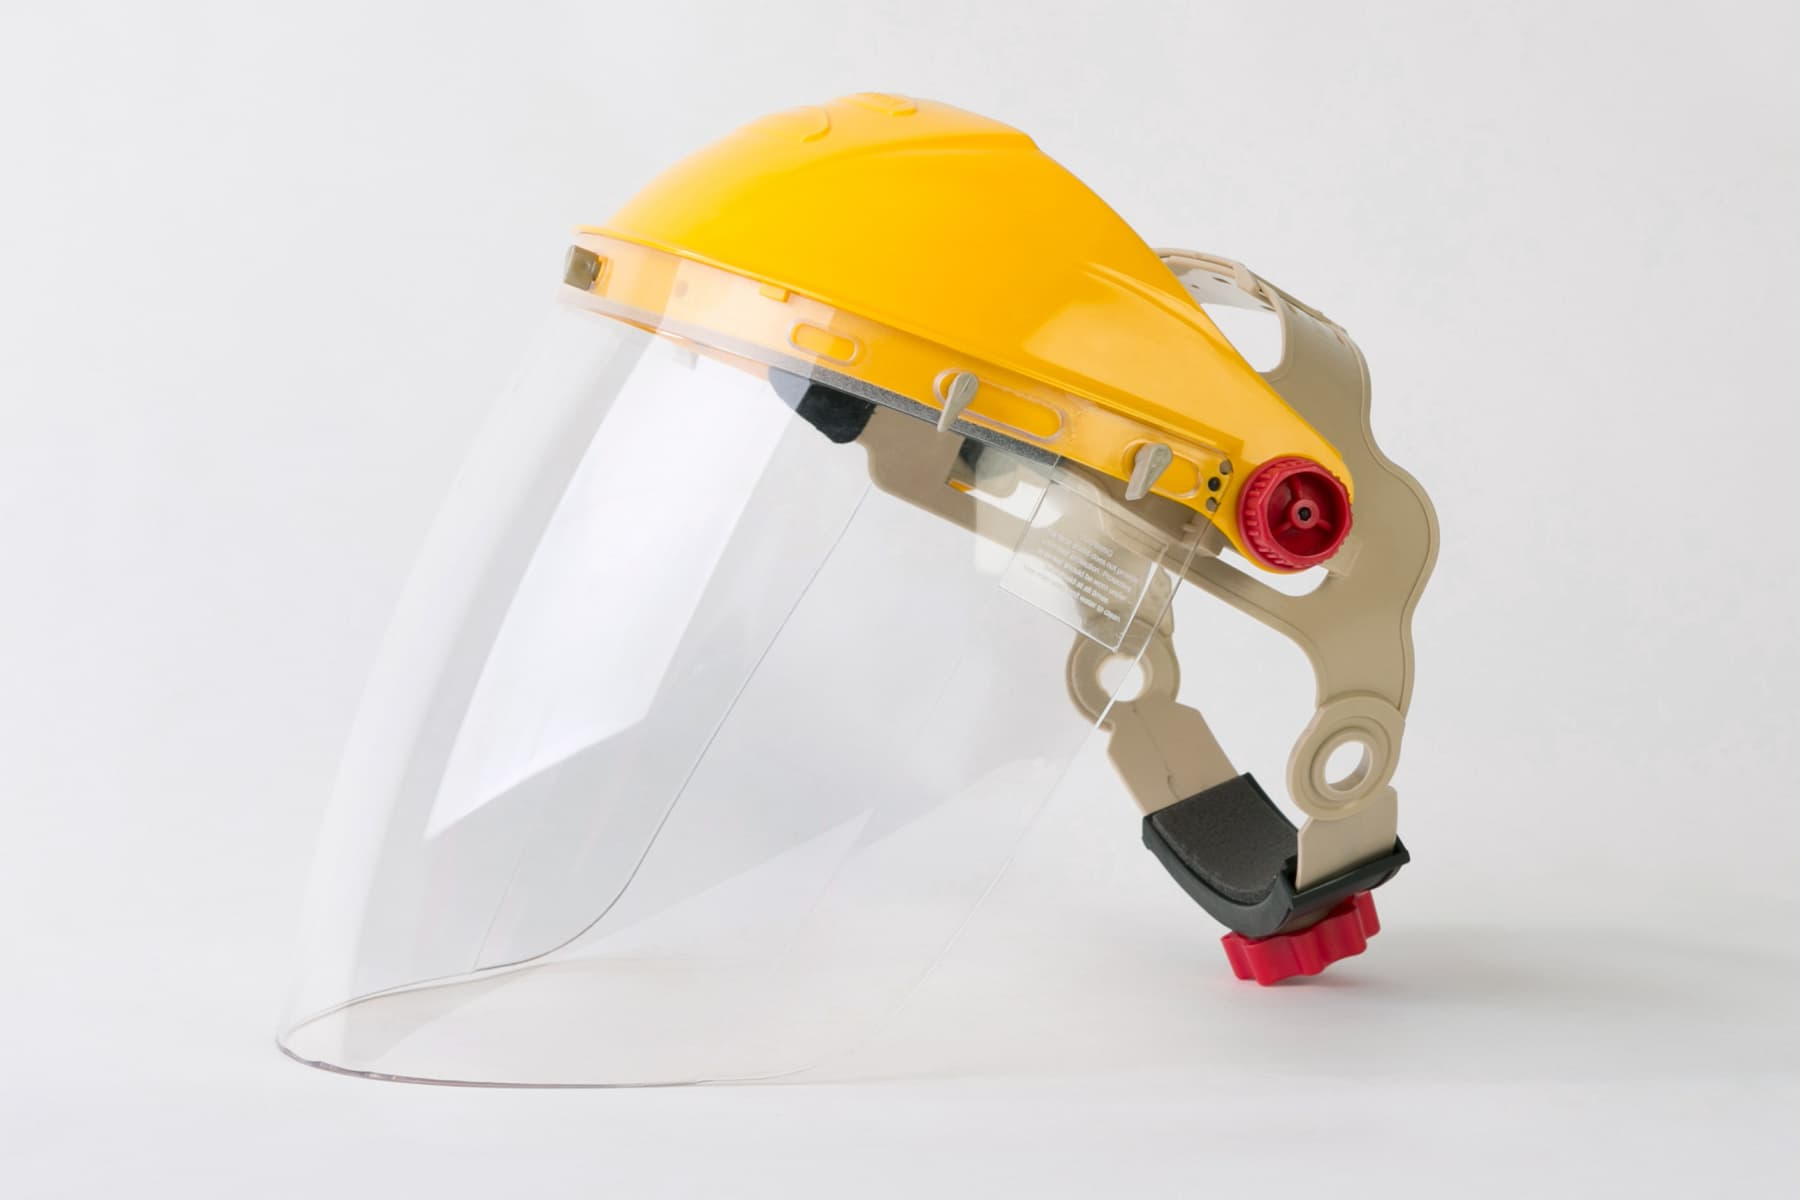 photo of face shield